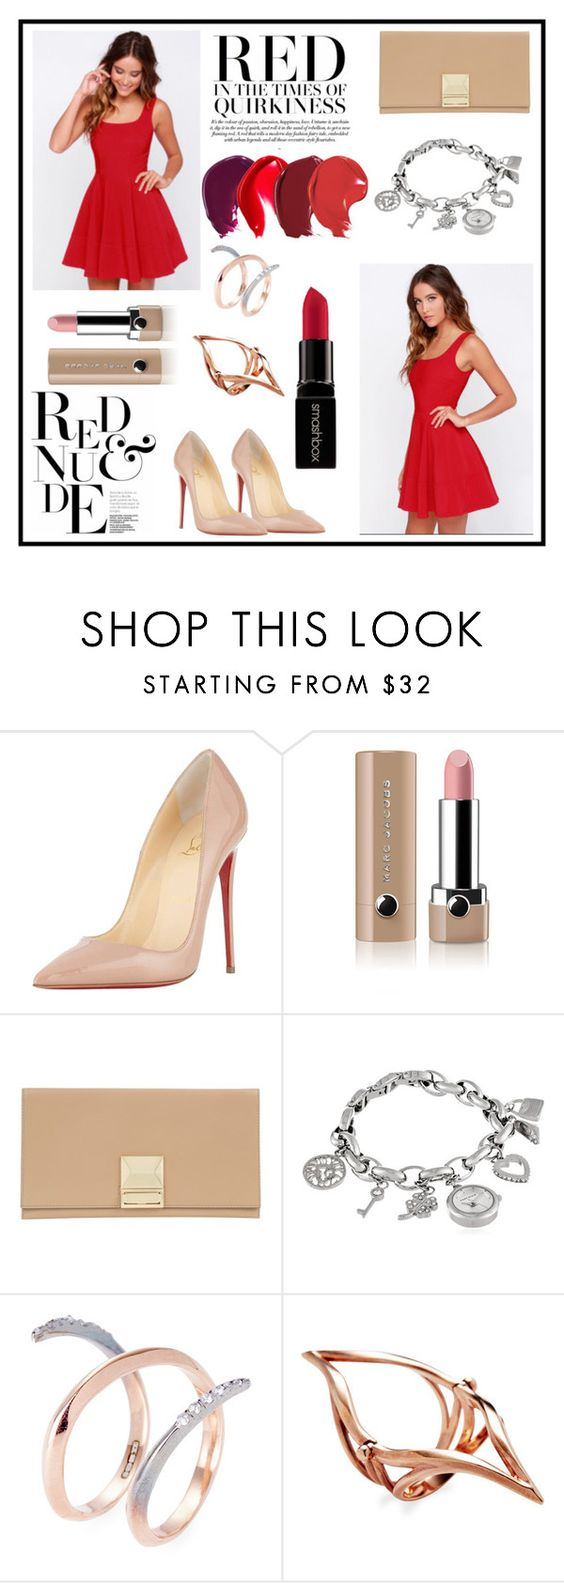 """Red and Nude"" by dumplingxd ❤ liked on Polyvore featuring Christian Louboutin, Marc Jacobs, Jaeger, Anne Klein, Katie Rowland and Smashbox"